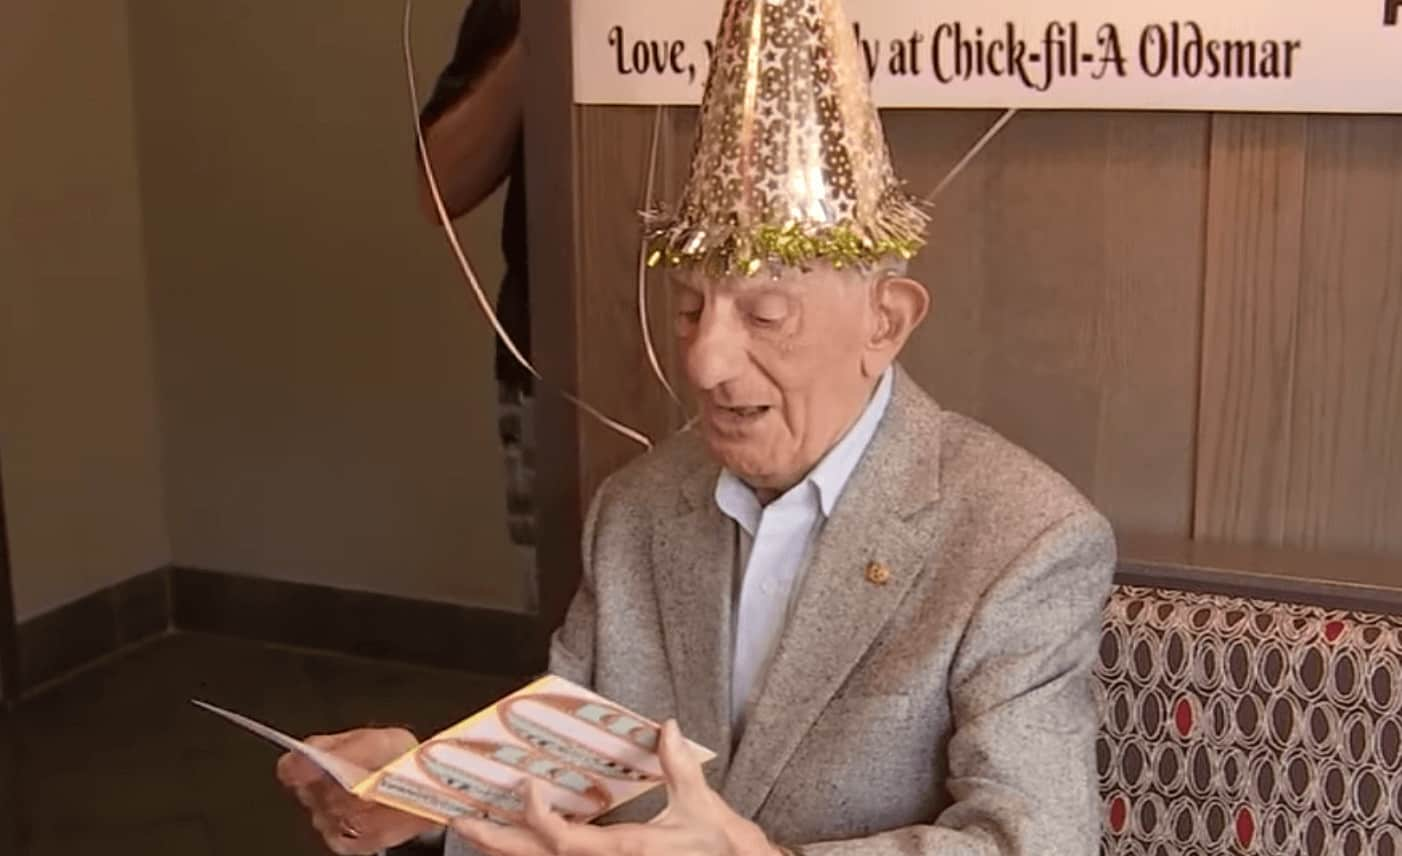 Chick Fil A Gives Customer Free Meals For Life On His 100th Birthday